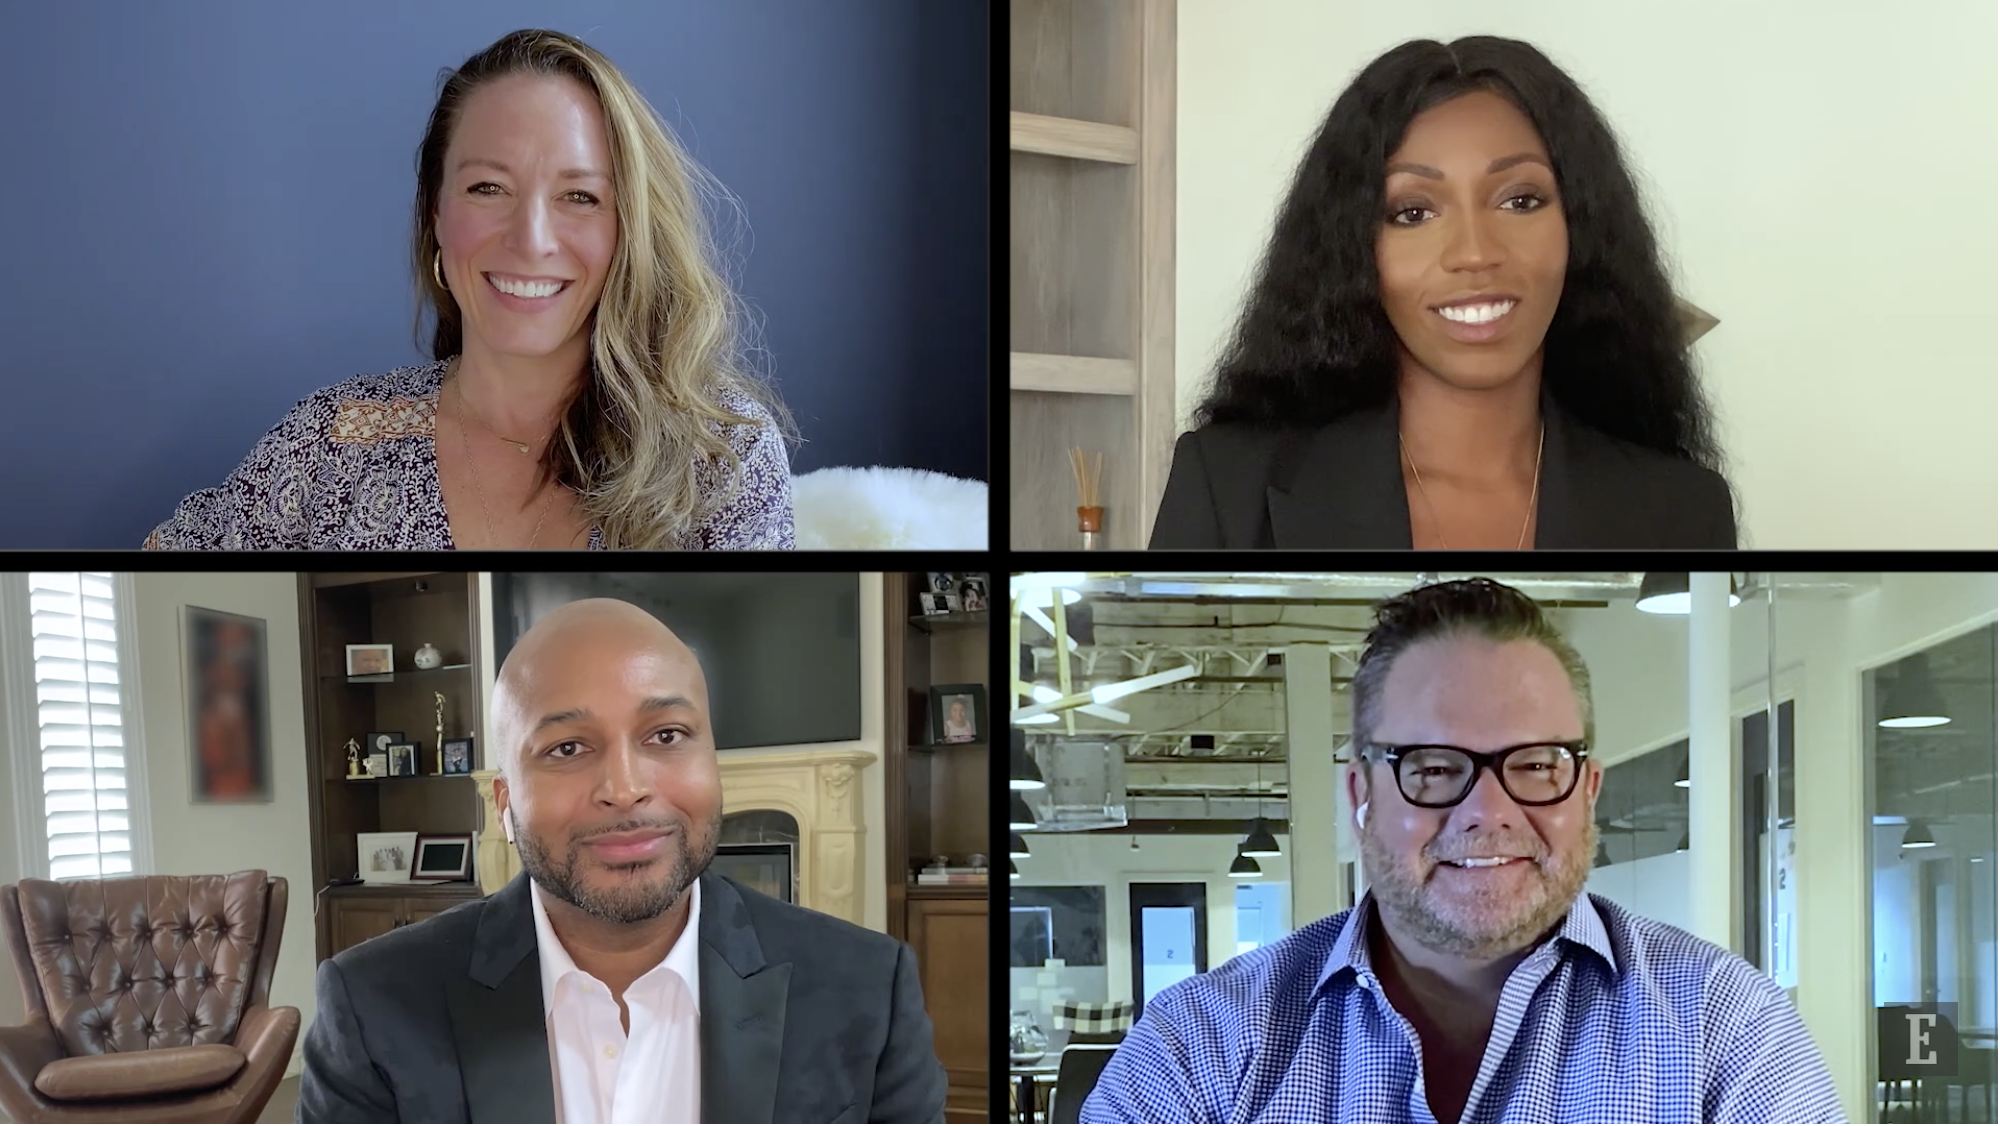 Elevator Pitch Ep. 1: What Could You Build With Another $500,000?